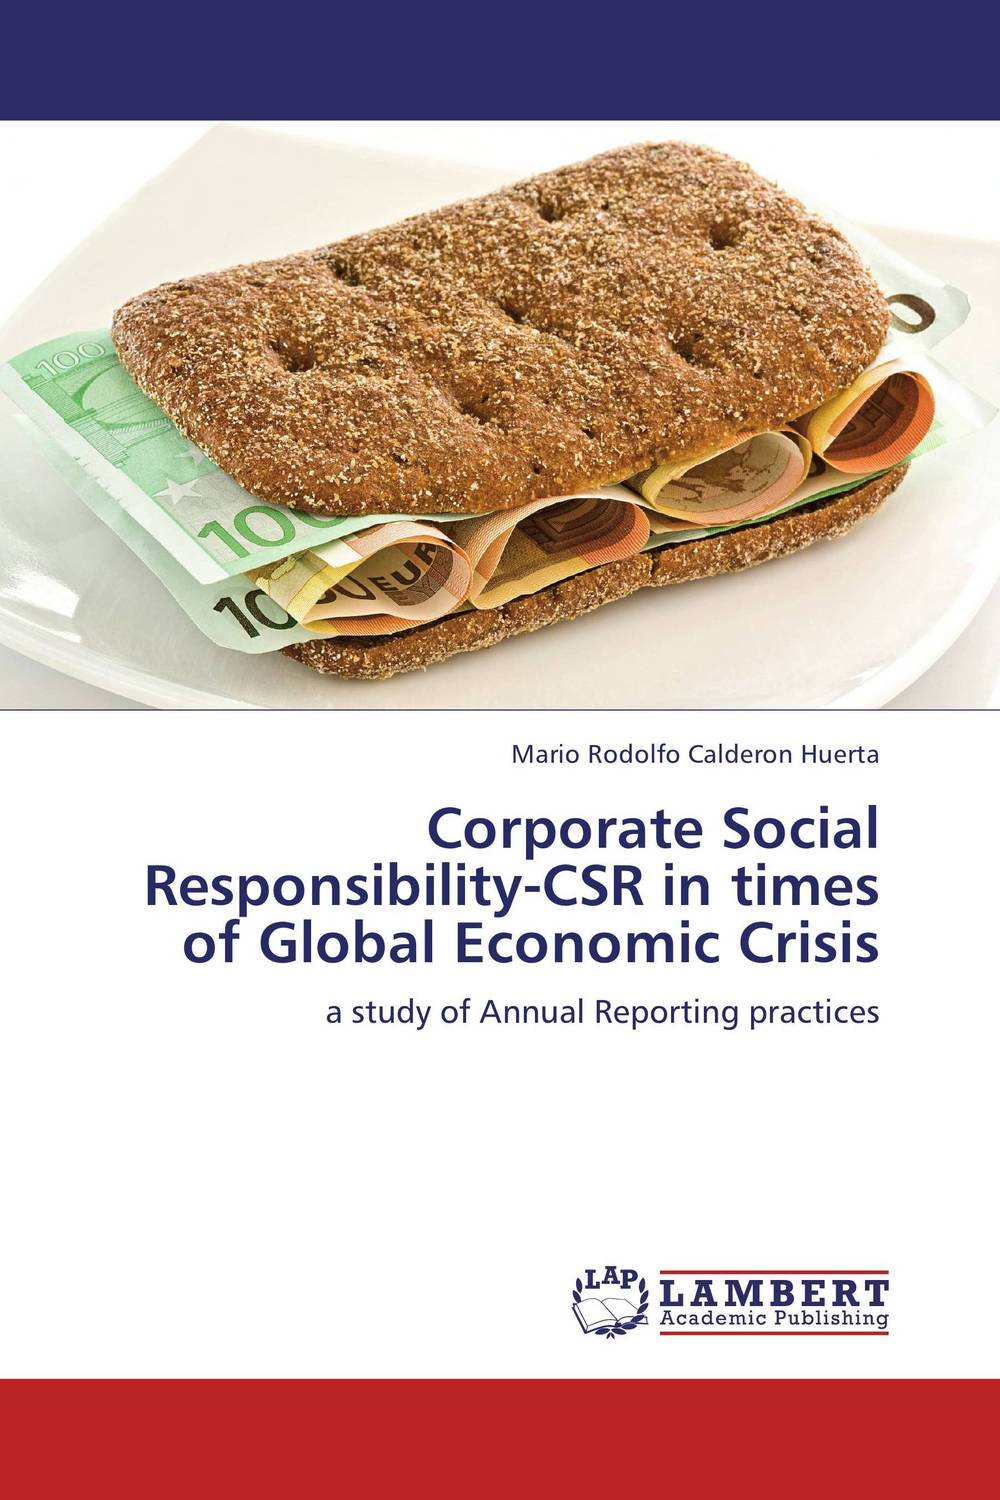 Corporate Social Responsibility-CSR in times of Global Economic Crisis corporate social responsibility csr in ethiopian floriculture industry